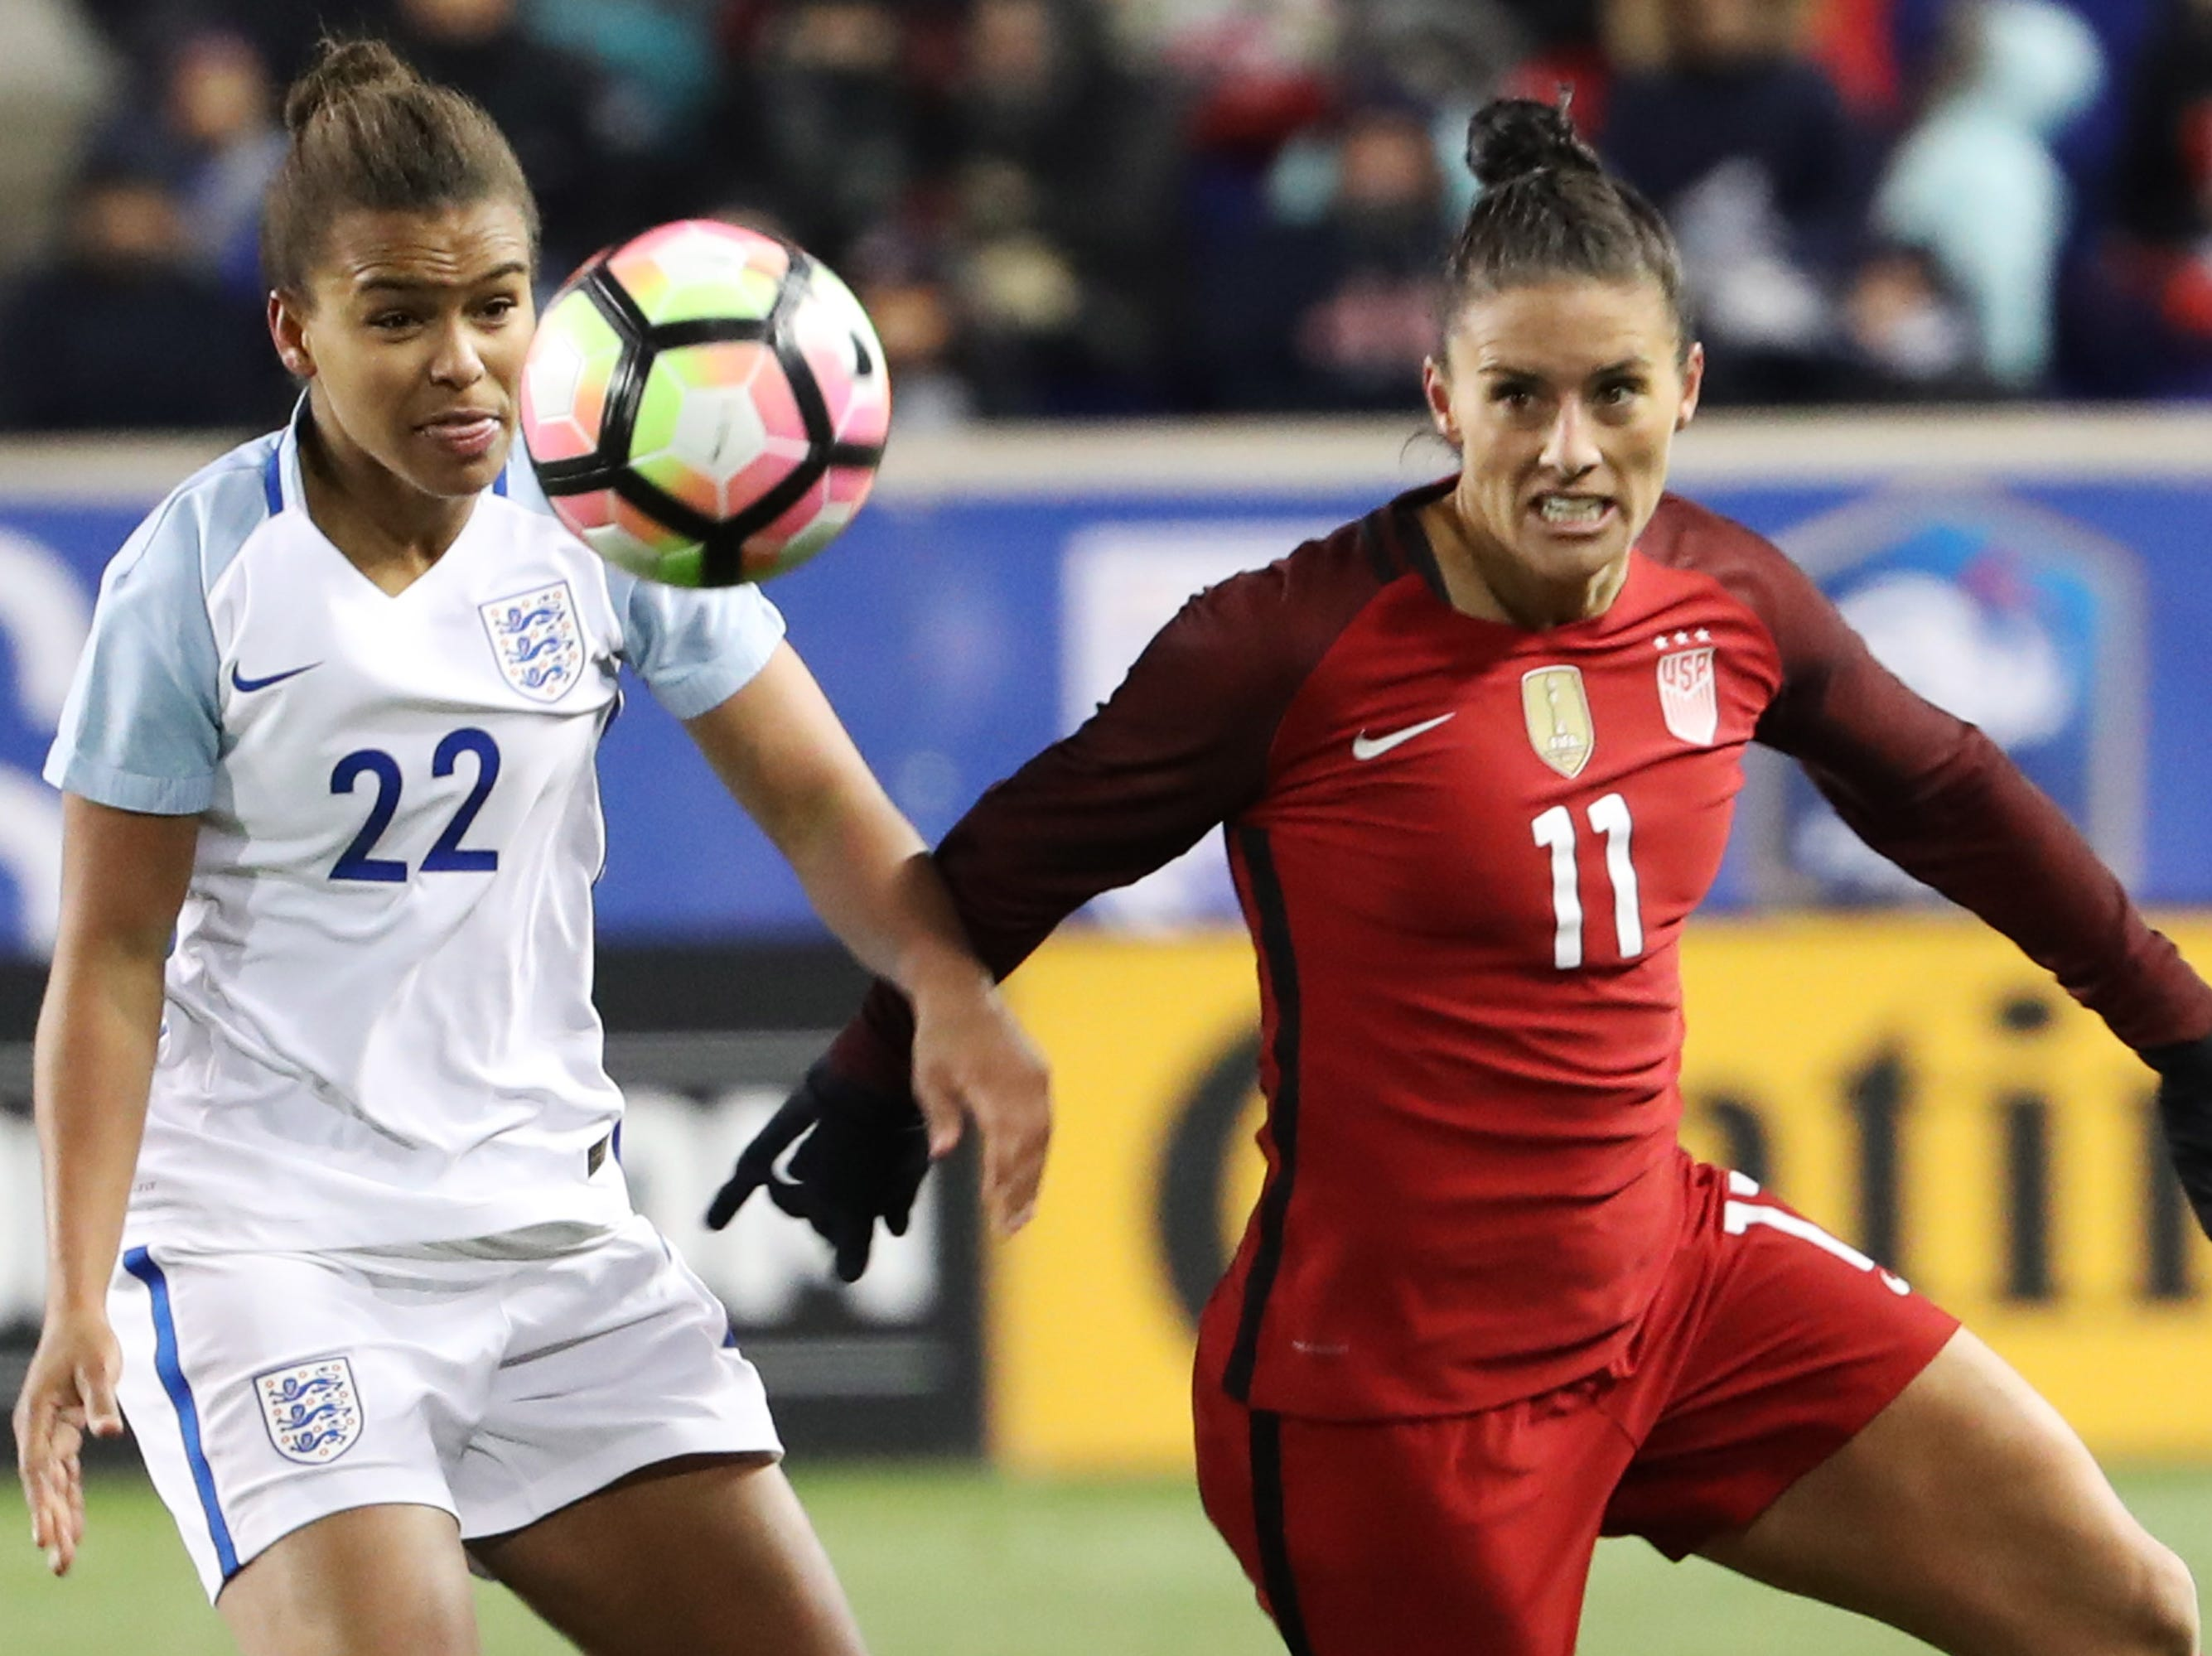 England's Nikita Parris (L) and United States' Ali Krieger (R) eye the ball as the United States and England women's national teams play in the SheBelieves Cup in Harrison, NJ, on March 4, 2017.  / AFP PHOTO / DOMINICK REUTER        (Photo credit should read DOMINICK REUTER/AFP/Getty Images)